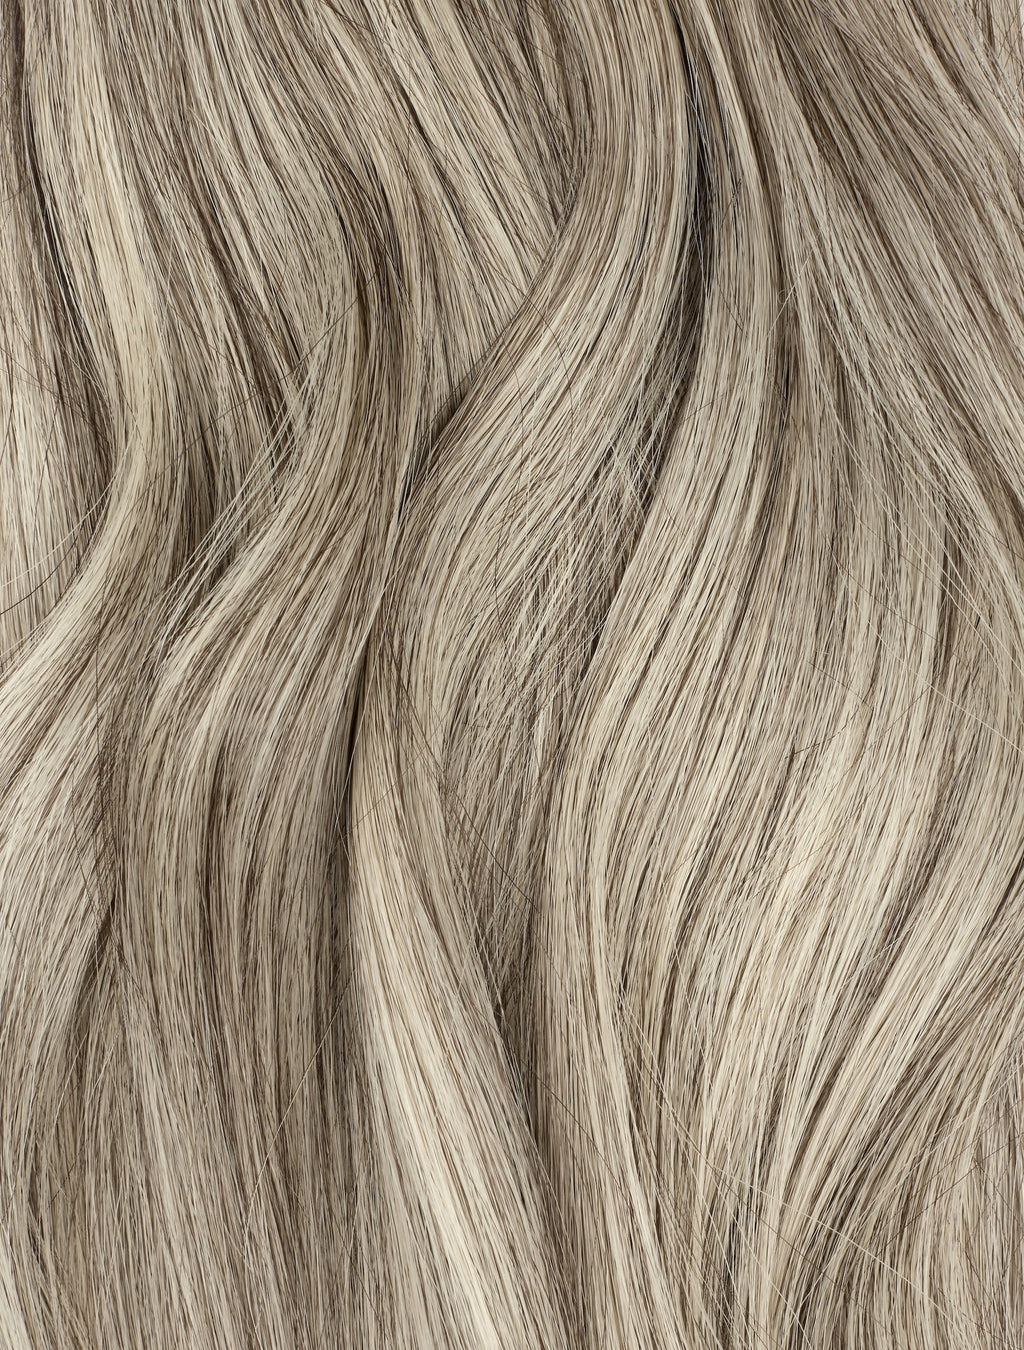 "Highlight - (Dark Brown #2 / White Blonde #60B) 22"" Tape- ON BACKORDER"